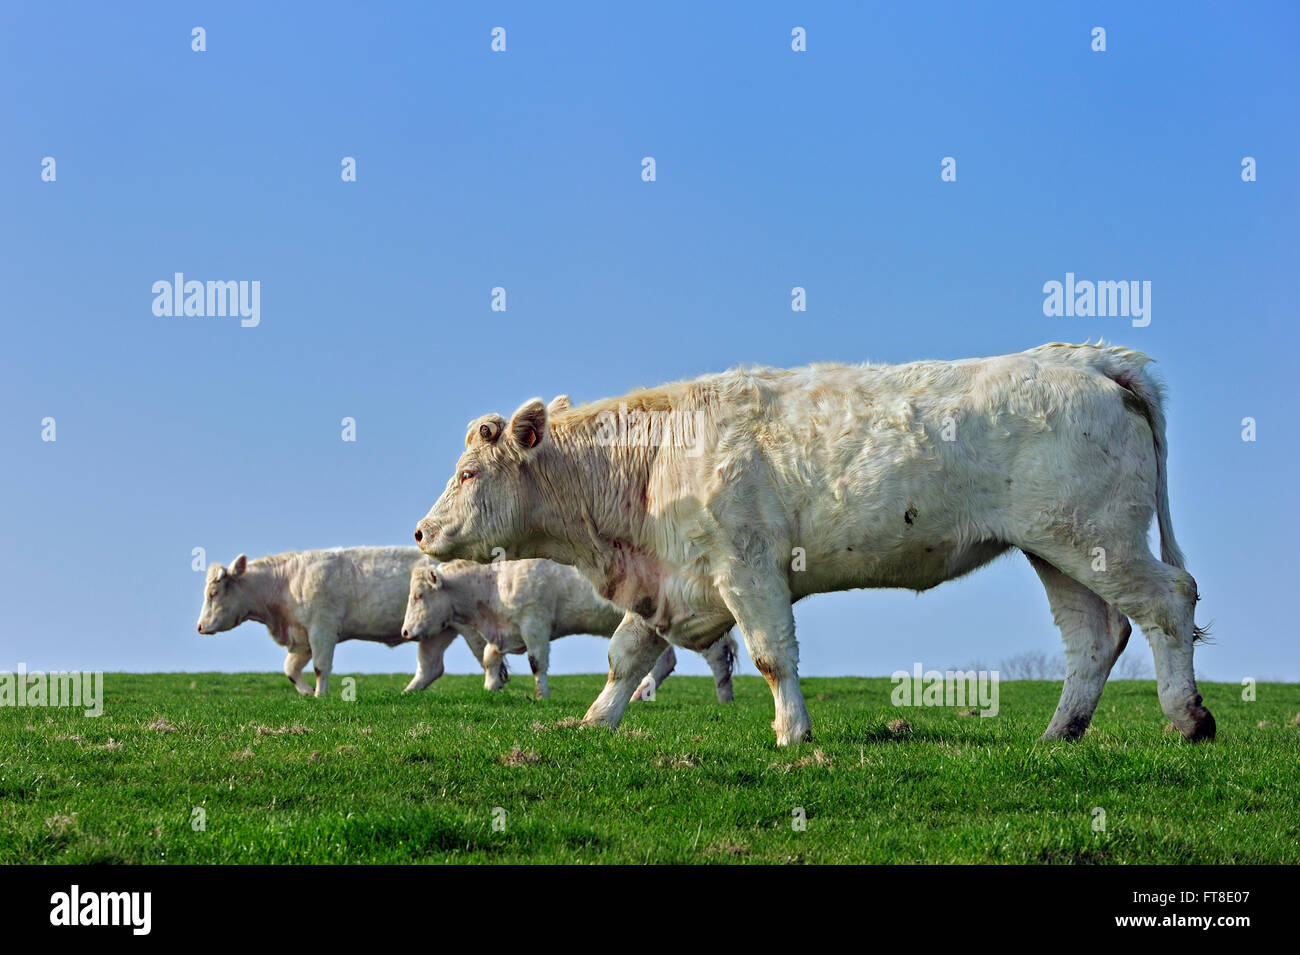 Charolais cows (Bos taurus), breed of taurine beef cattle from the Charolais area surrounding Charolles, Burgundy, - Stock Image